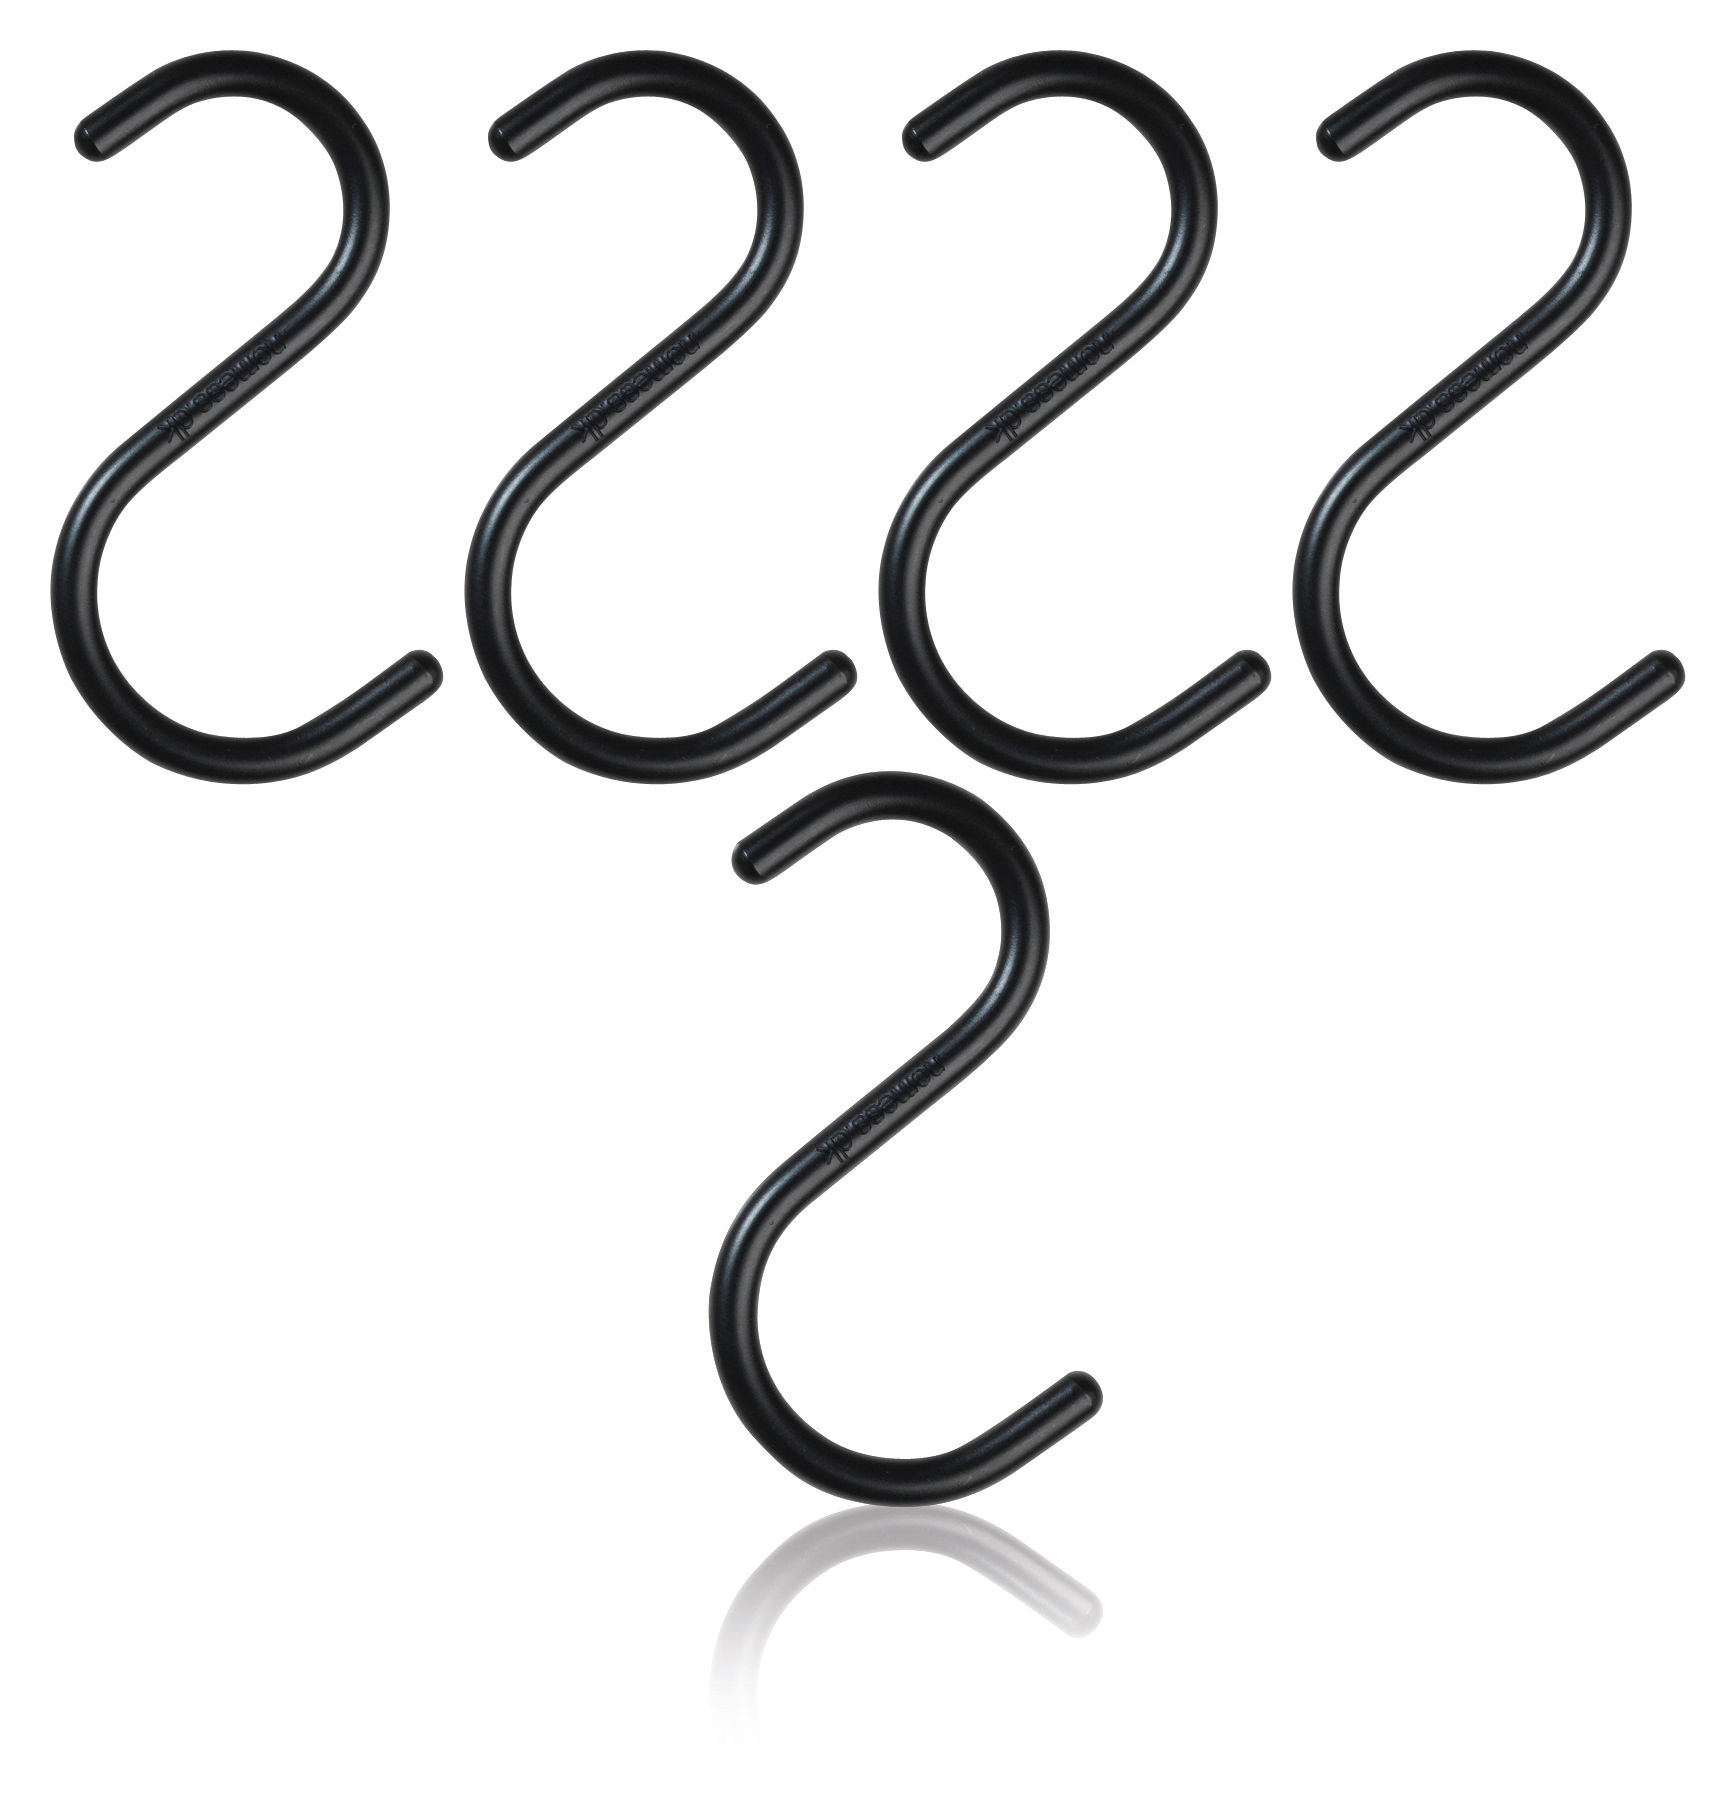 S Hook Small Hook Black By Nomess